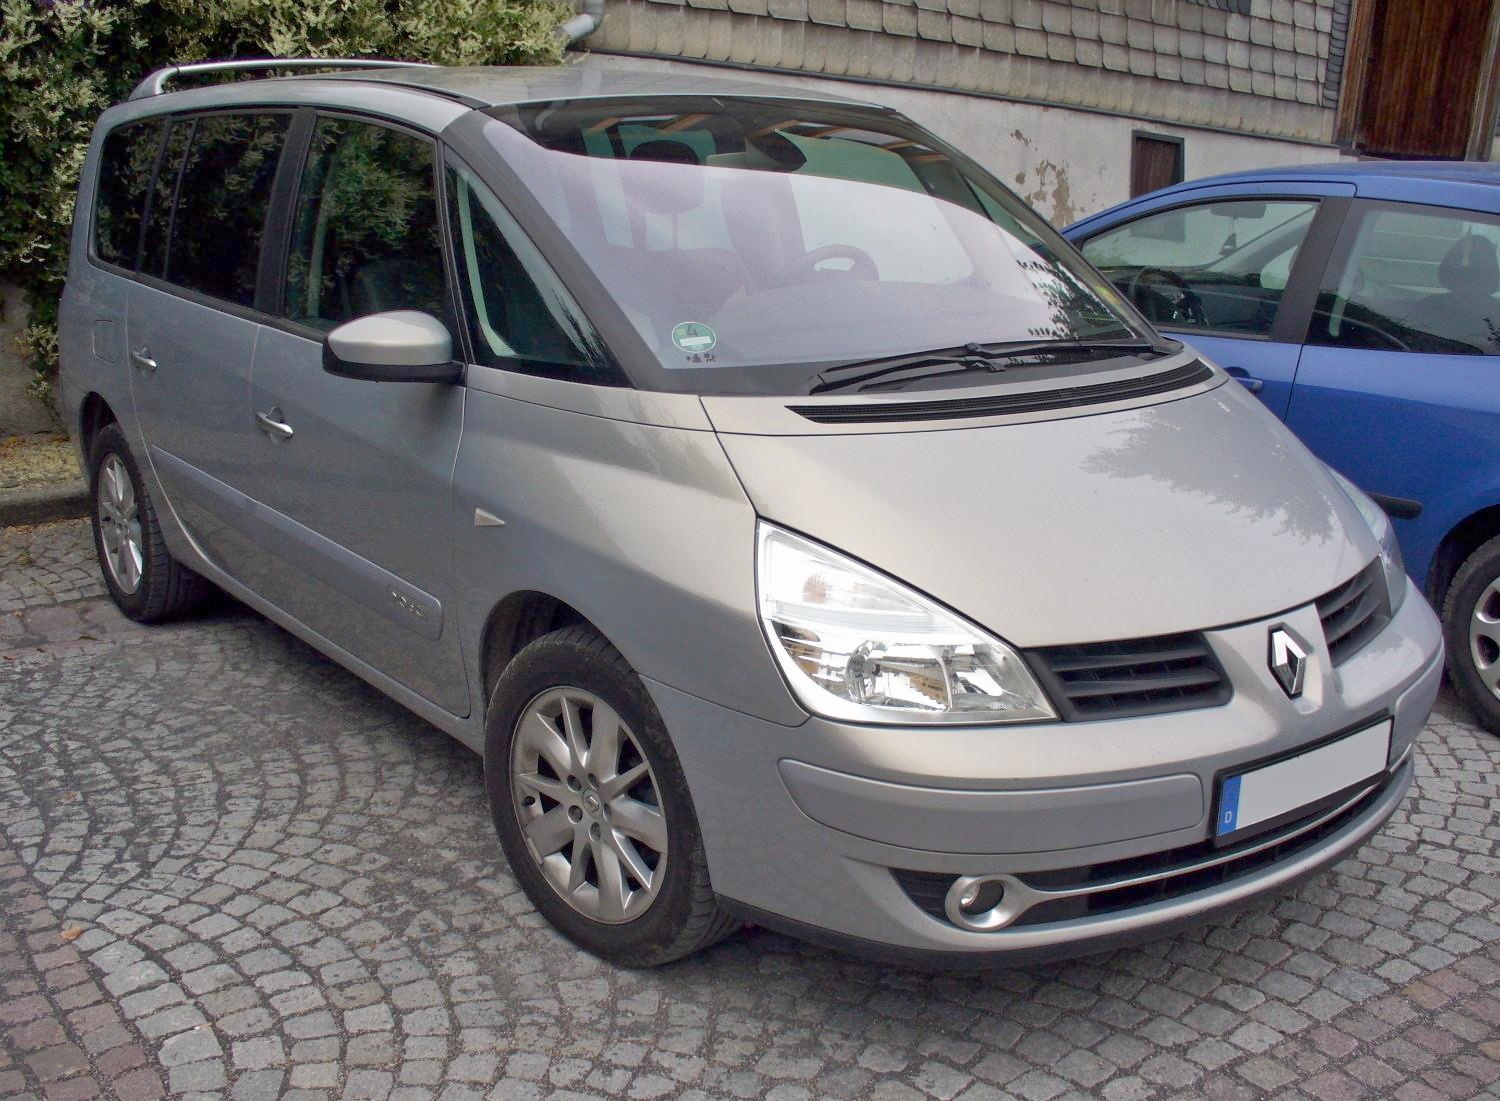 2008 renault espace iv pictures information and specs. Black Bedroom Furniture Sets. Home Design Ideas